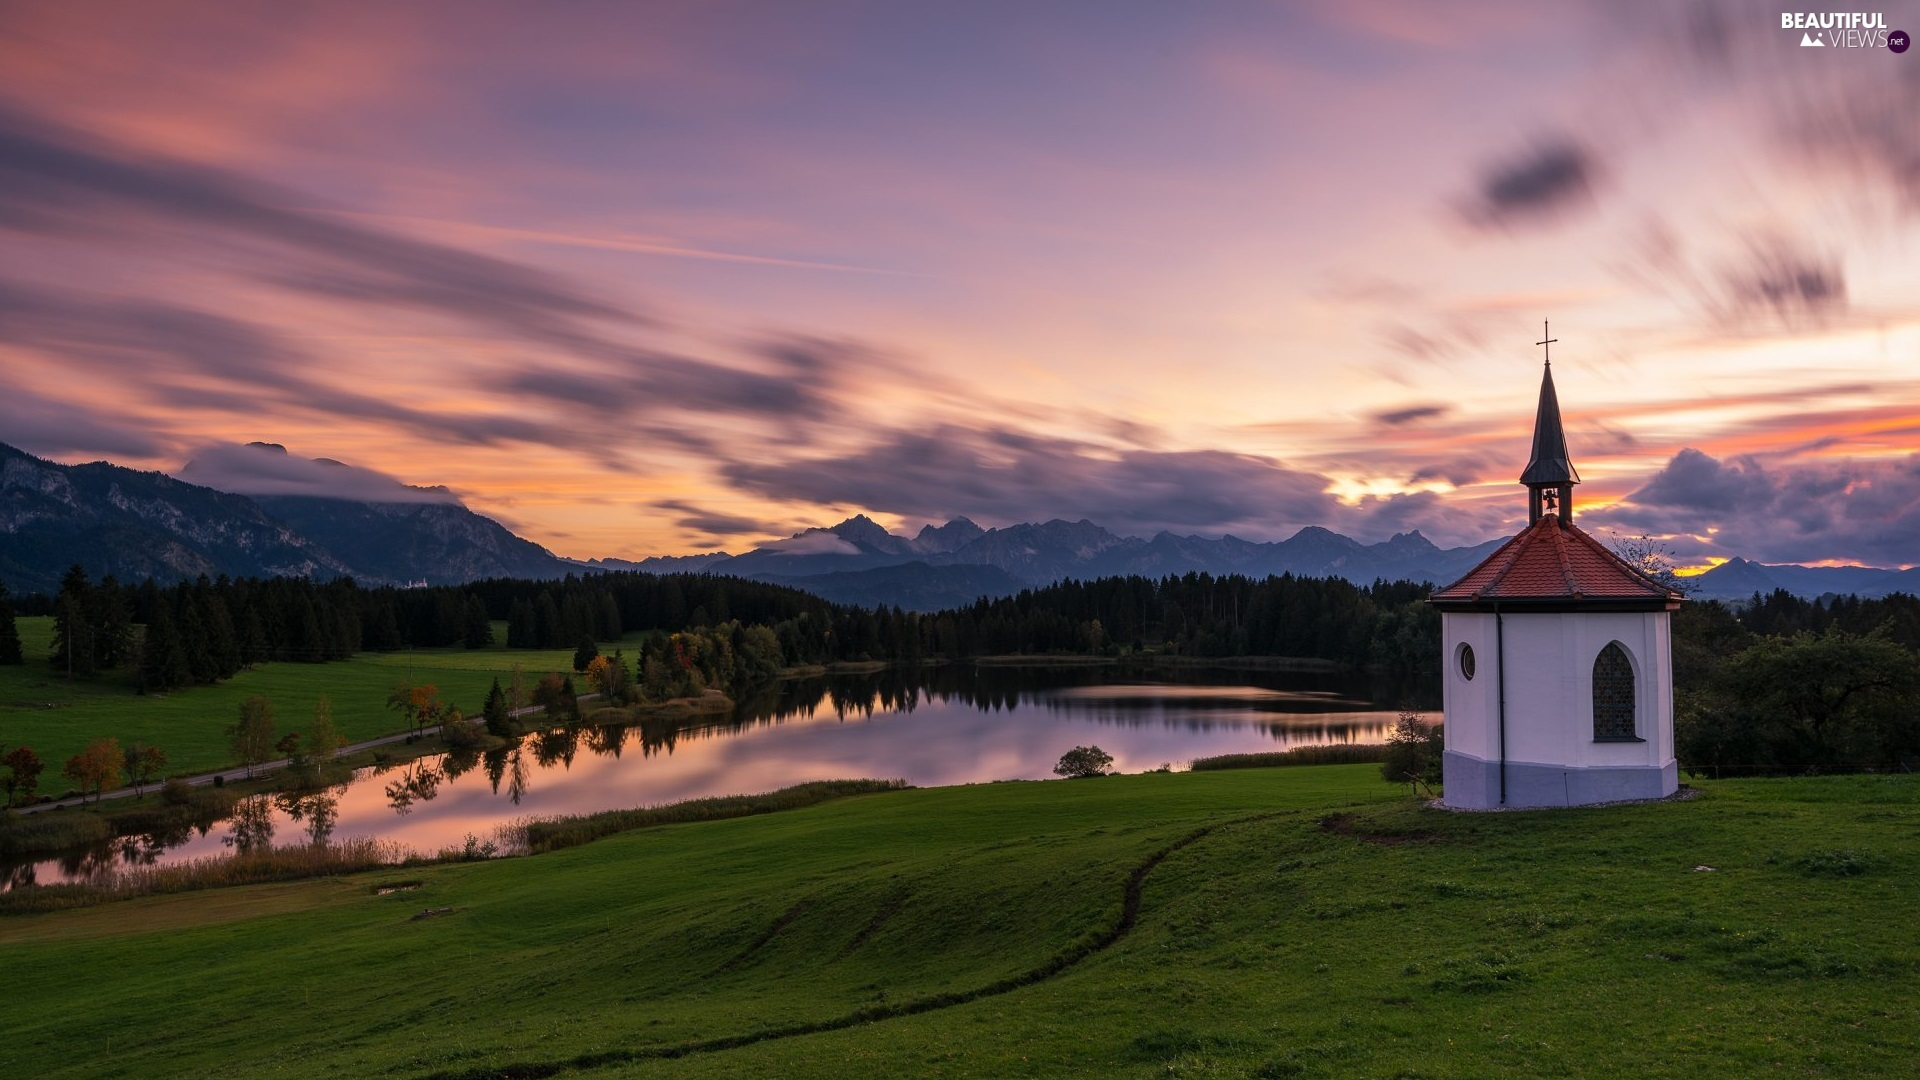 chapel, trees, clouds, viewes, Great Sunsets, lake, Mountains, forest